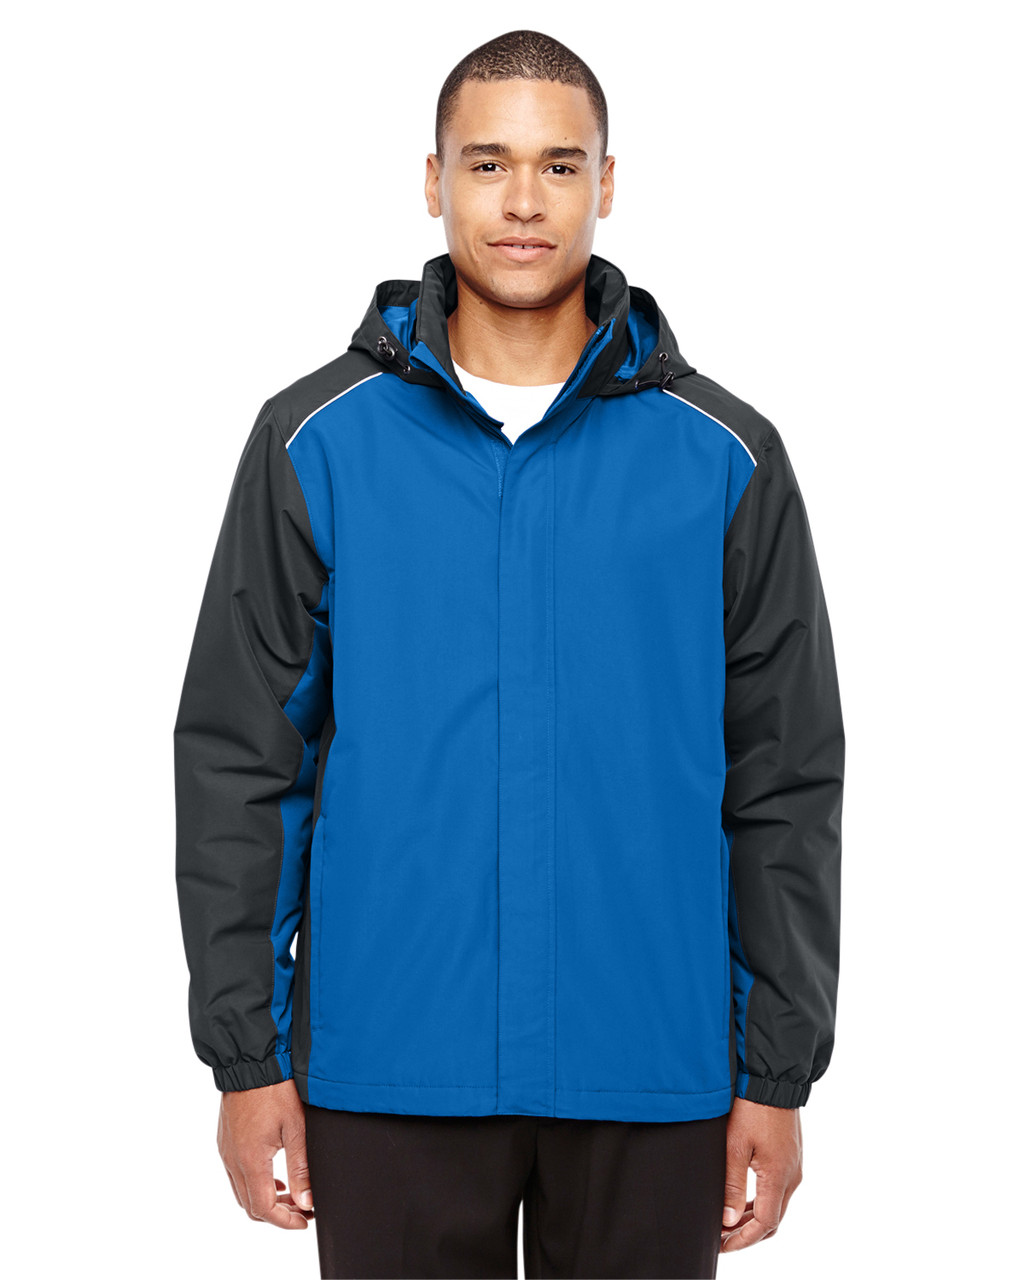 True Royal/Carbon - 88225 Ash City - Core 365 Men's Inspire Colorblock All-Season Jacket | Blankclothing.ca